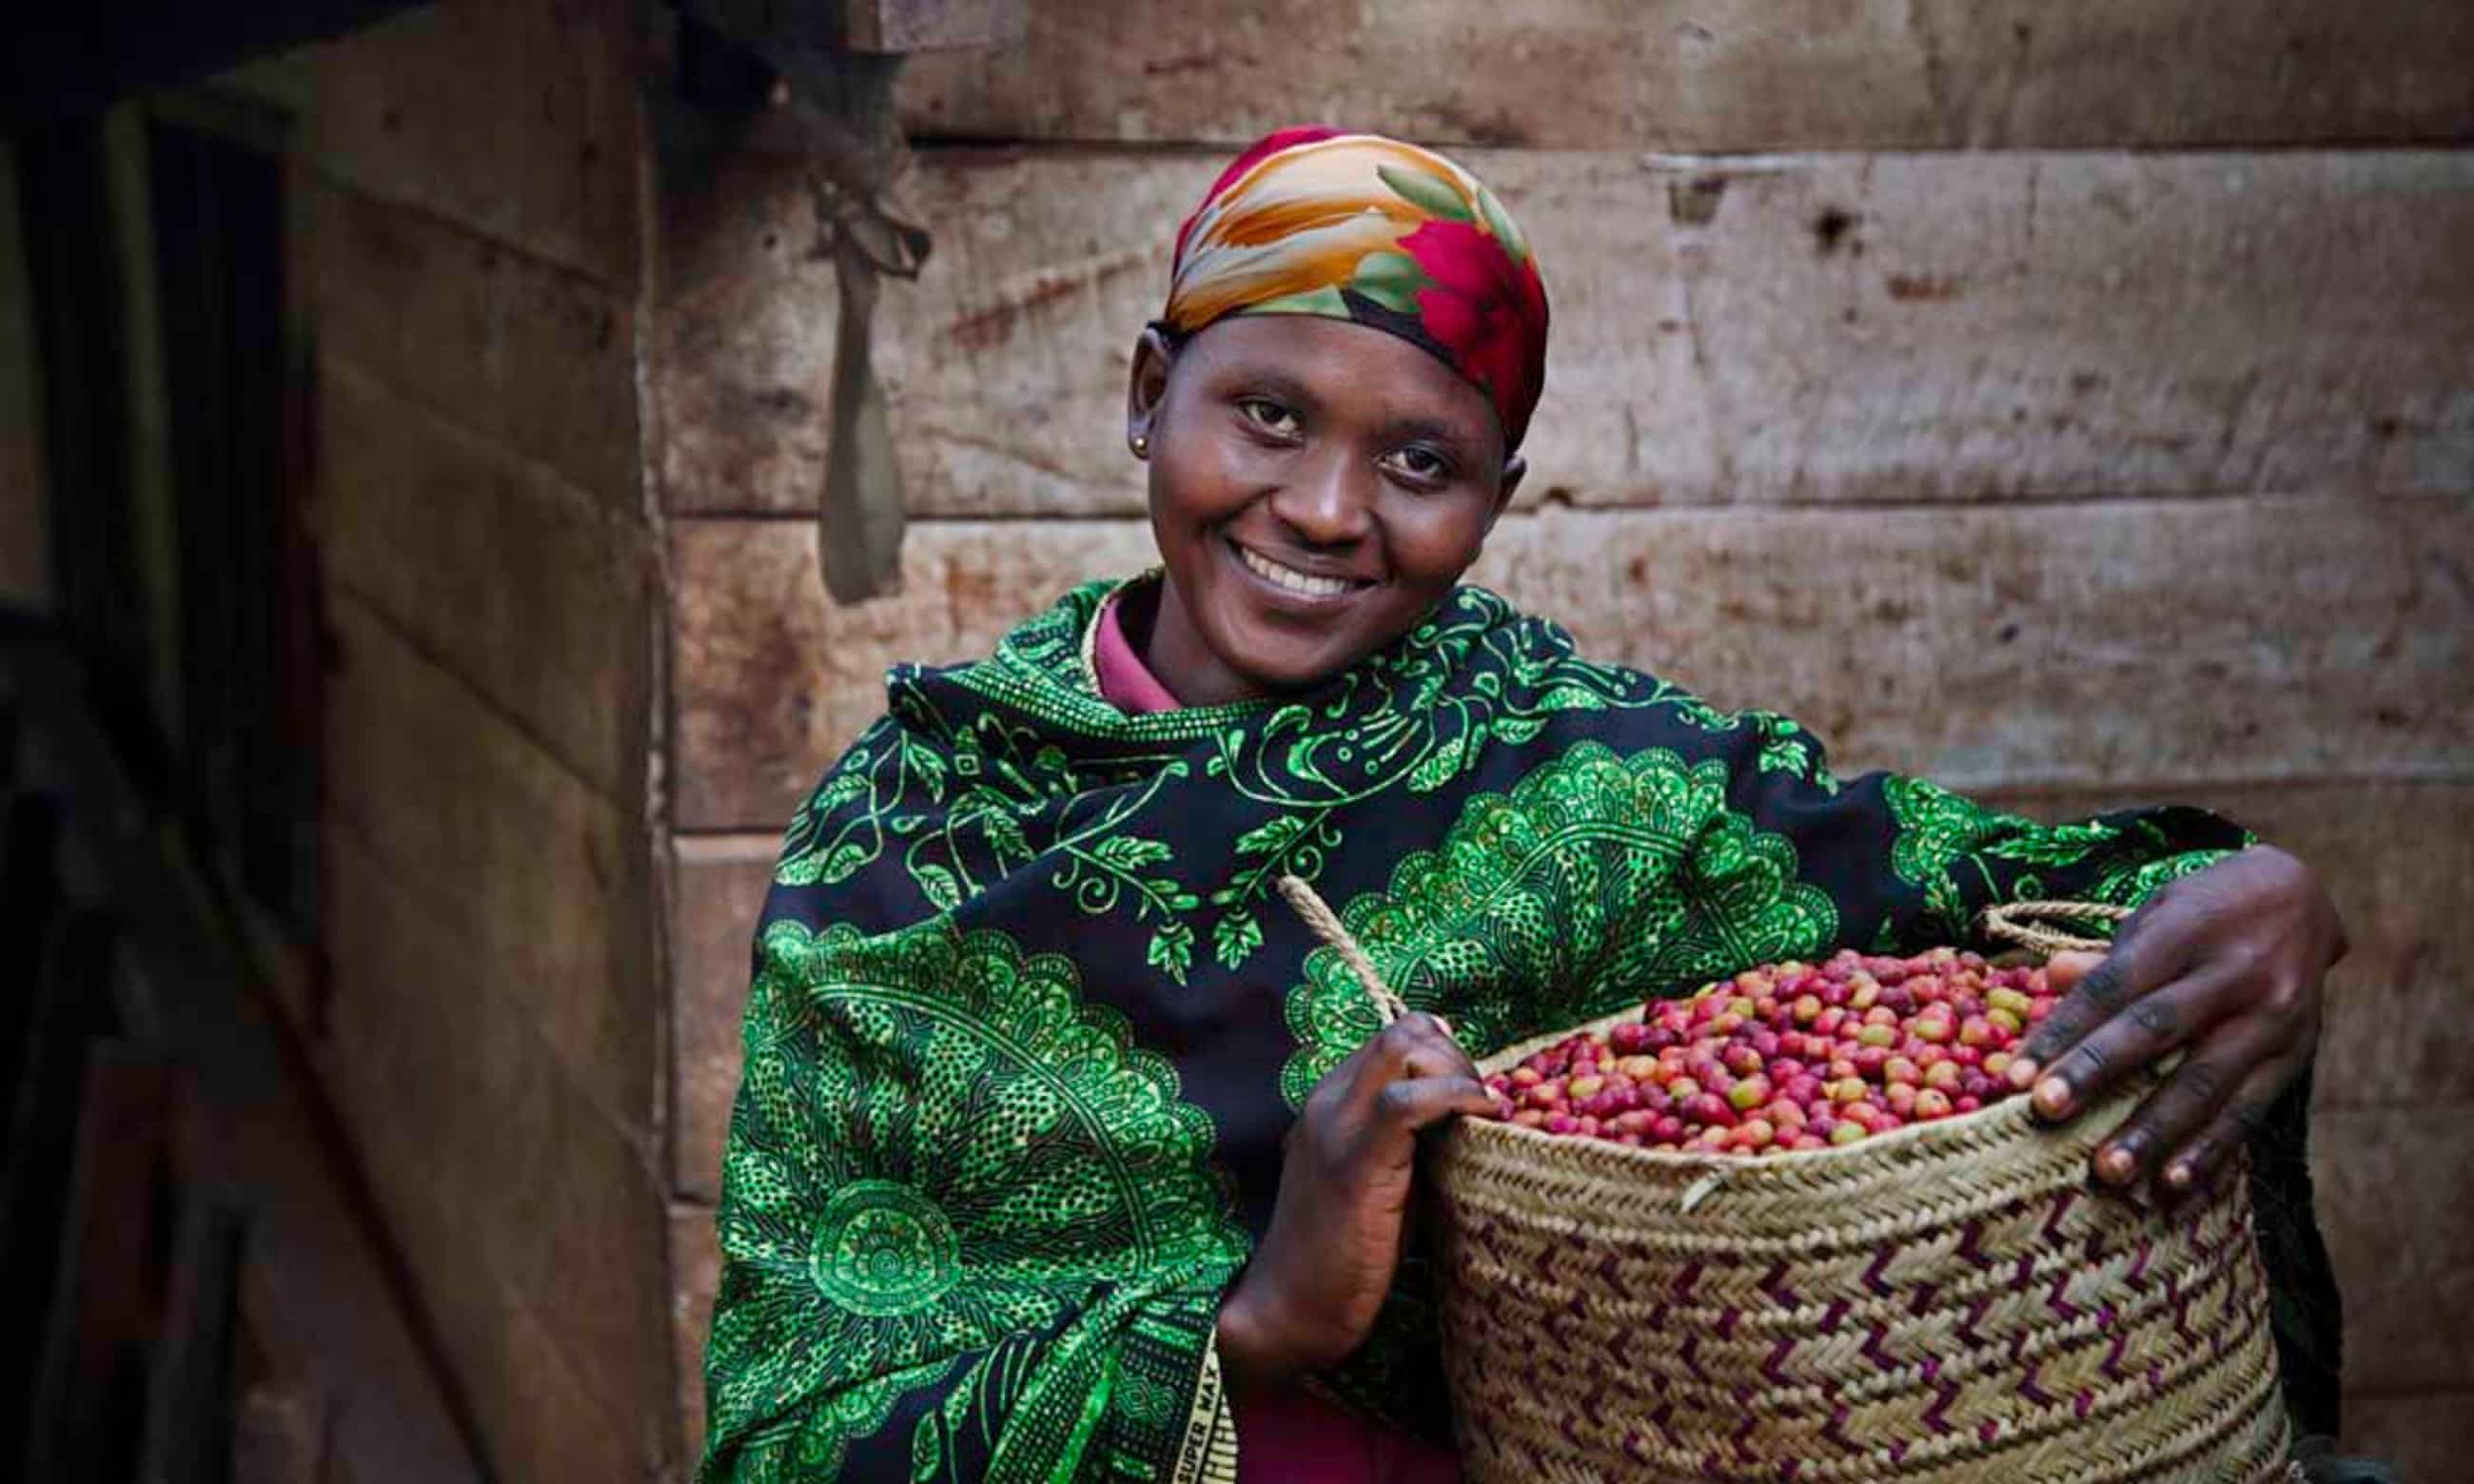 Coffee and climate: changing the future one cup at a time